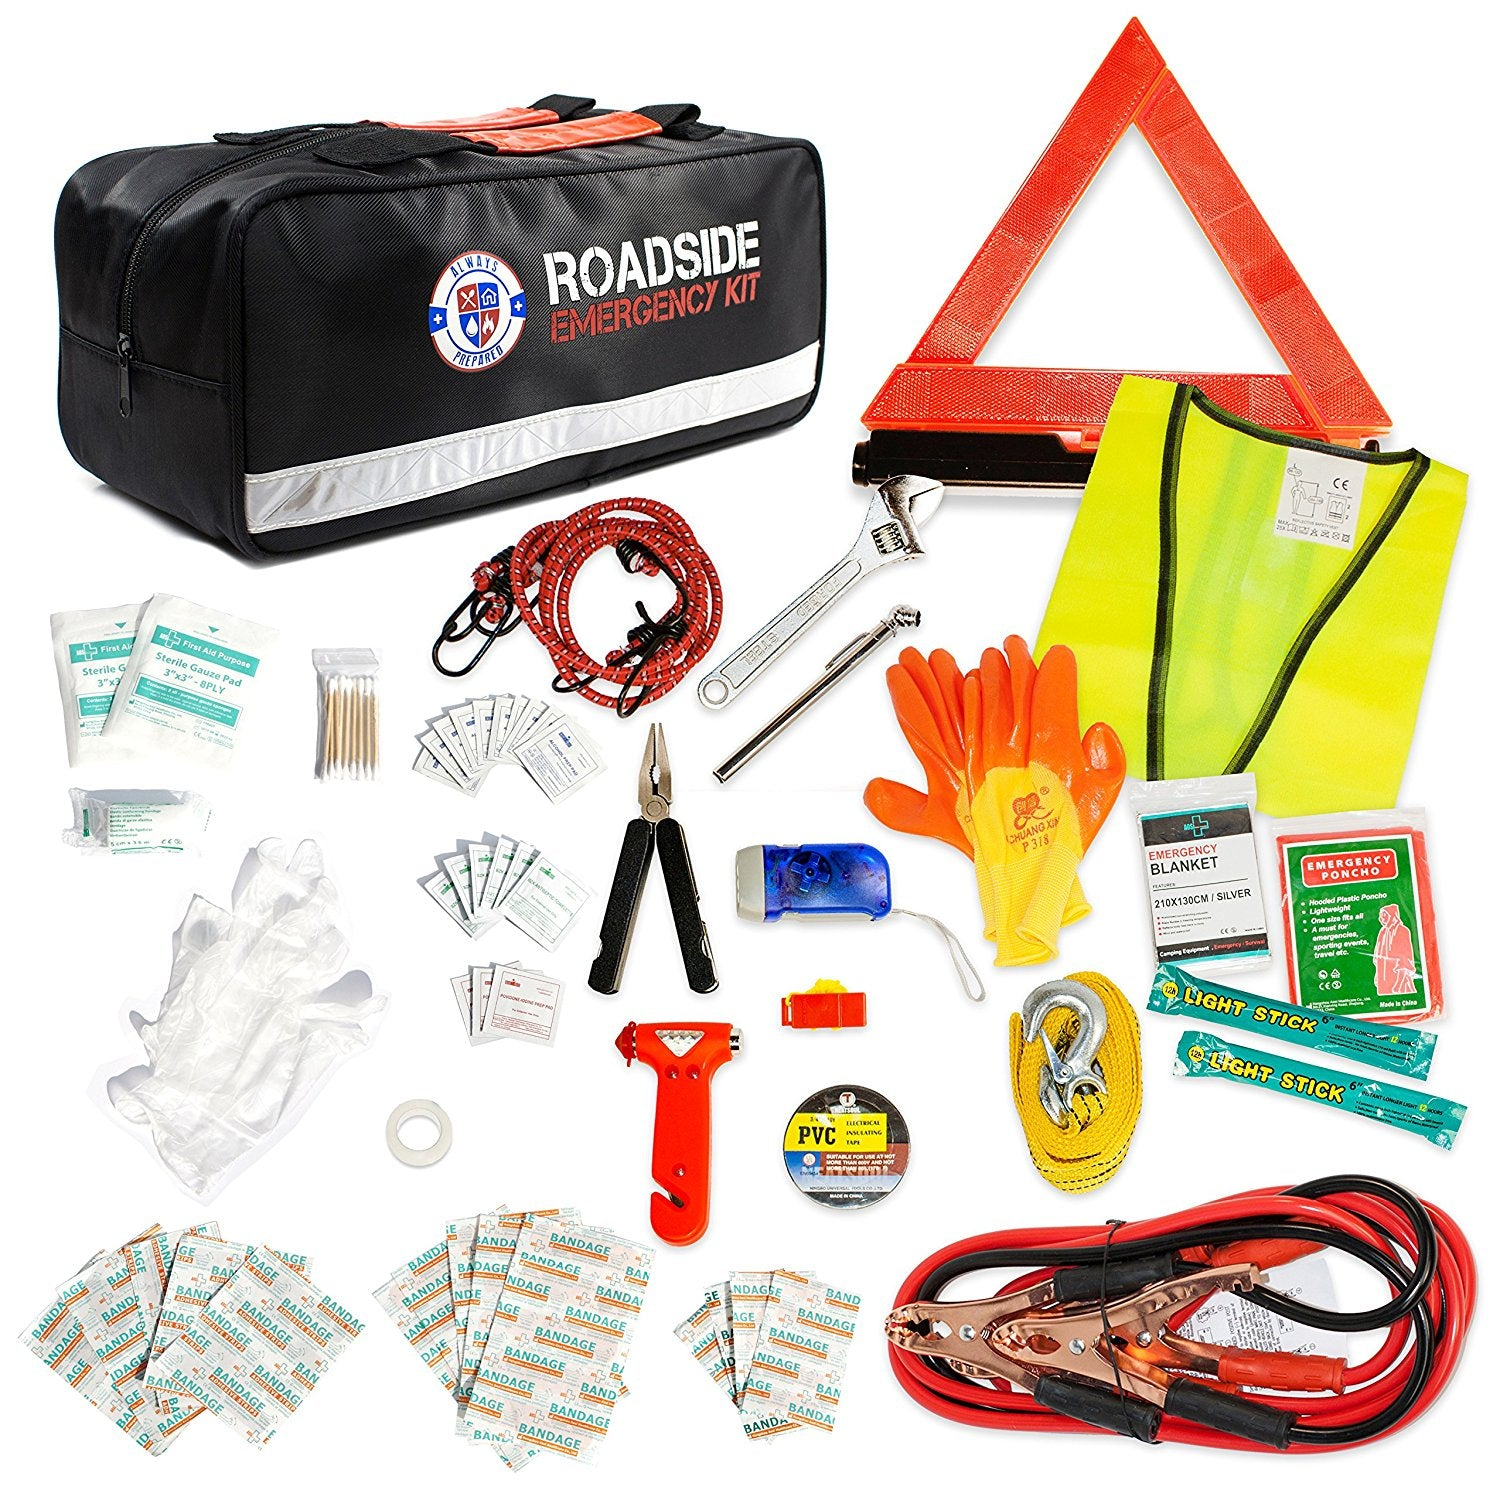 Auto Emergency Kit with Jumper Cables